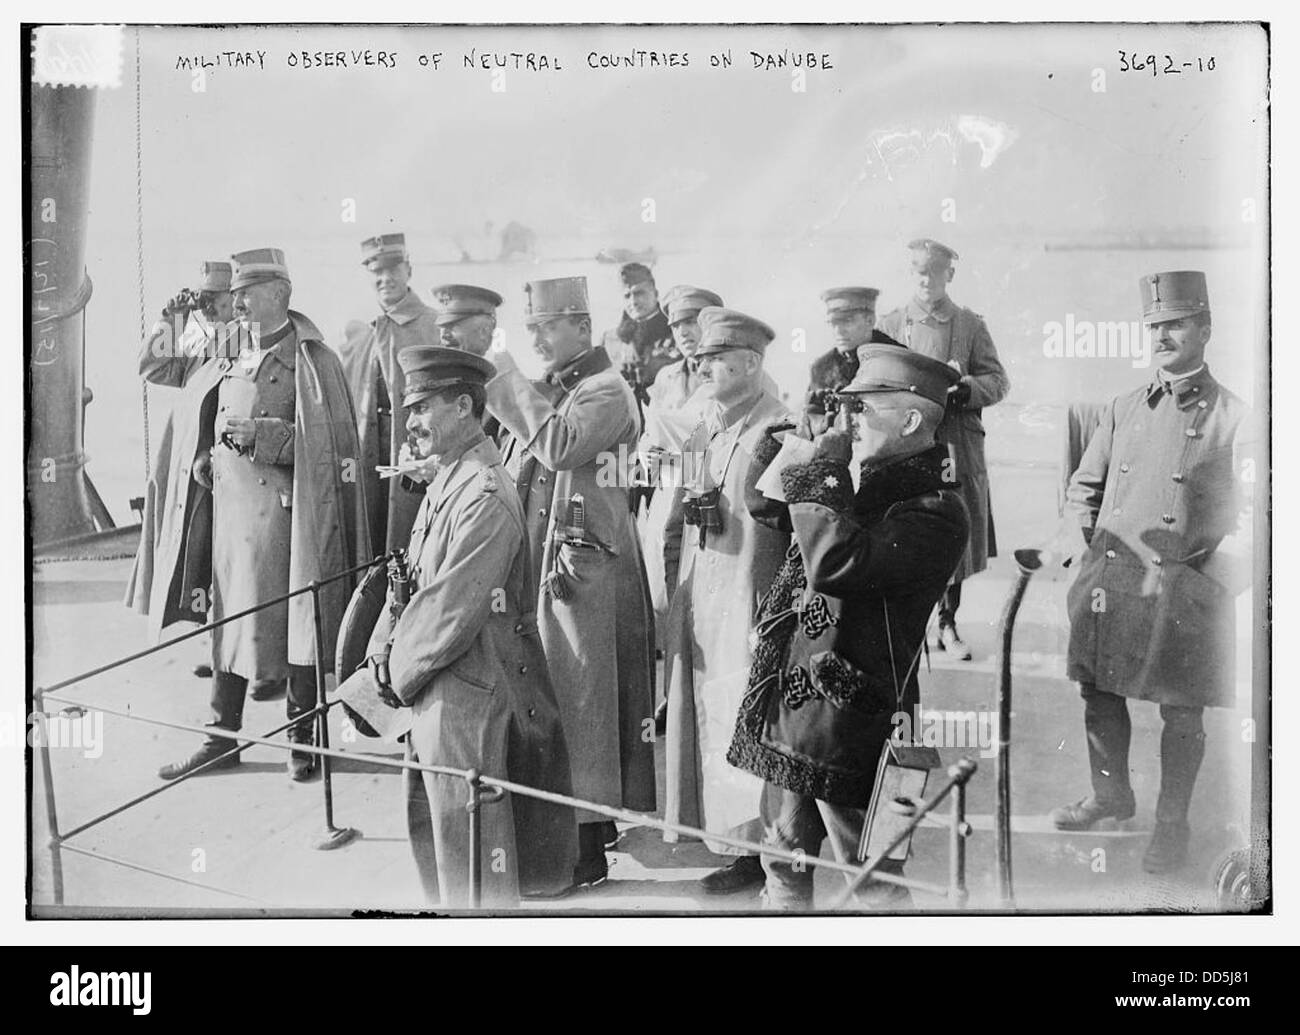 Military Observers of Neutral Countries on Danube (LOC) - Stock Image